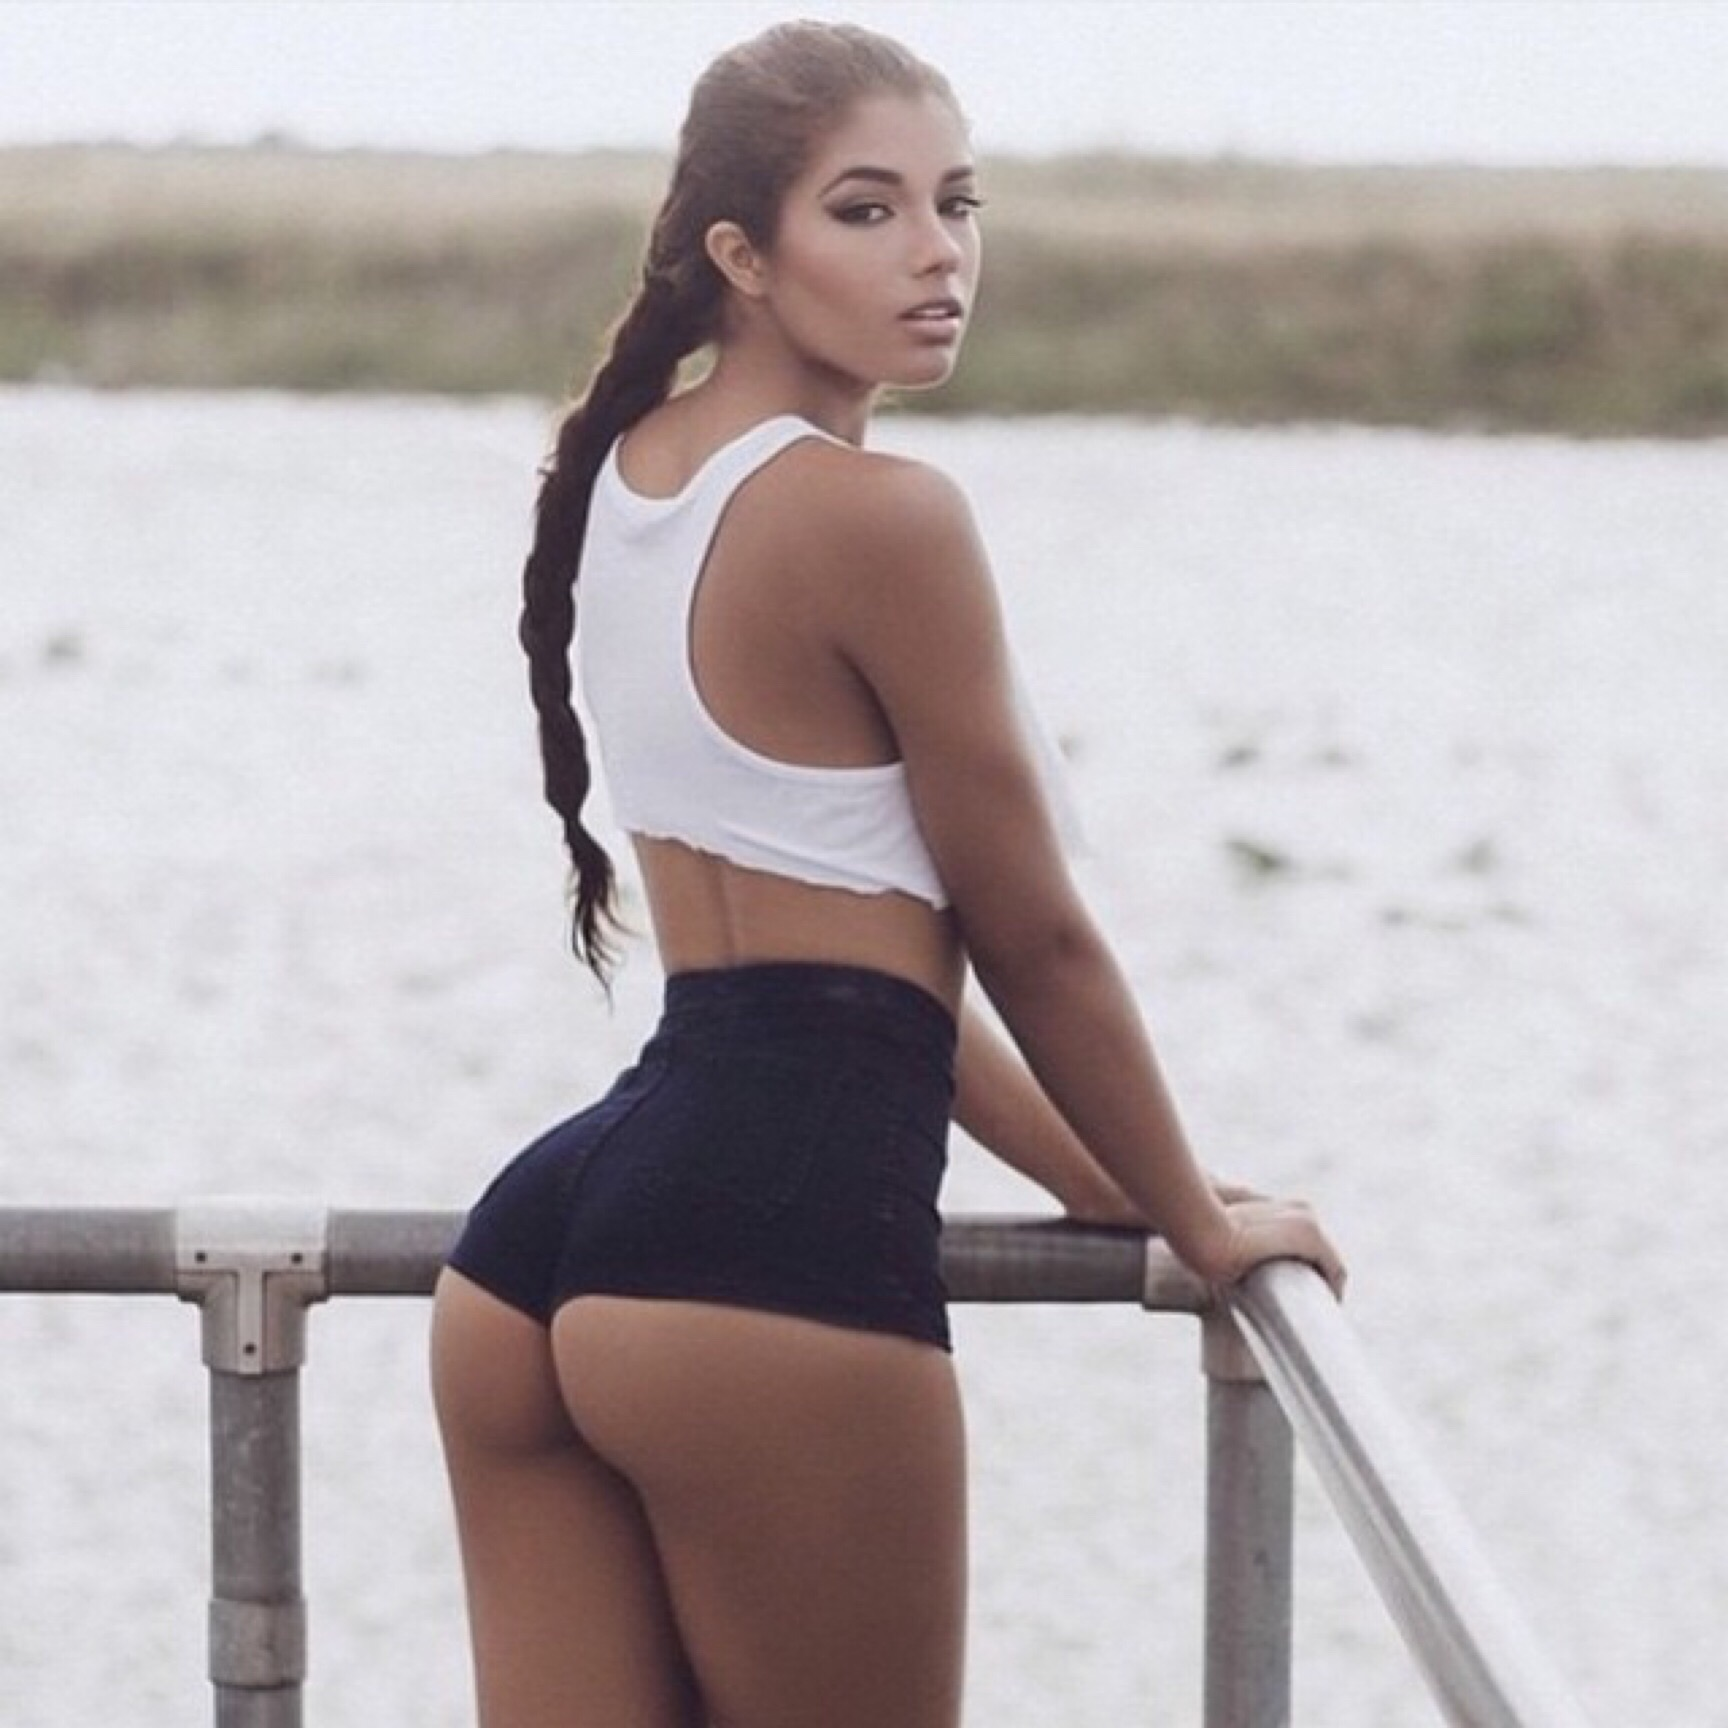 beautiful booty of yovanna ventura sticking out of her little spandex shorts